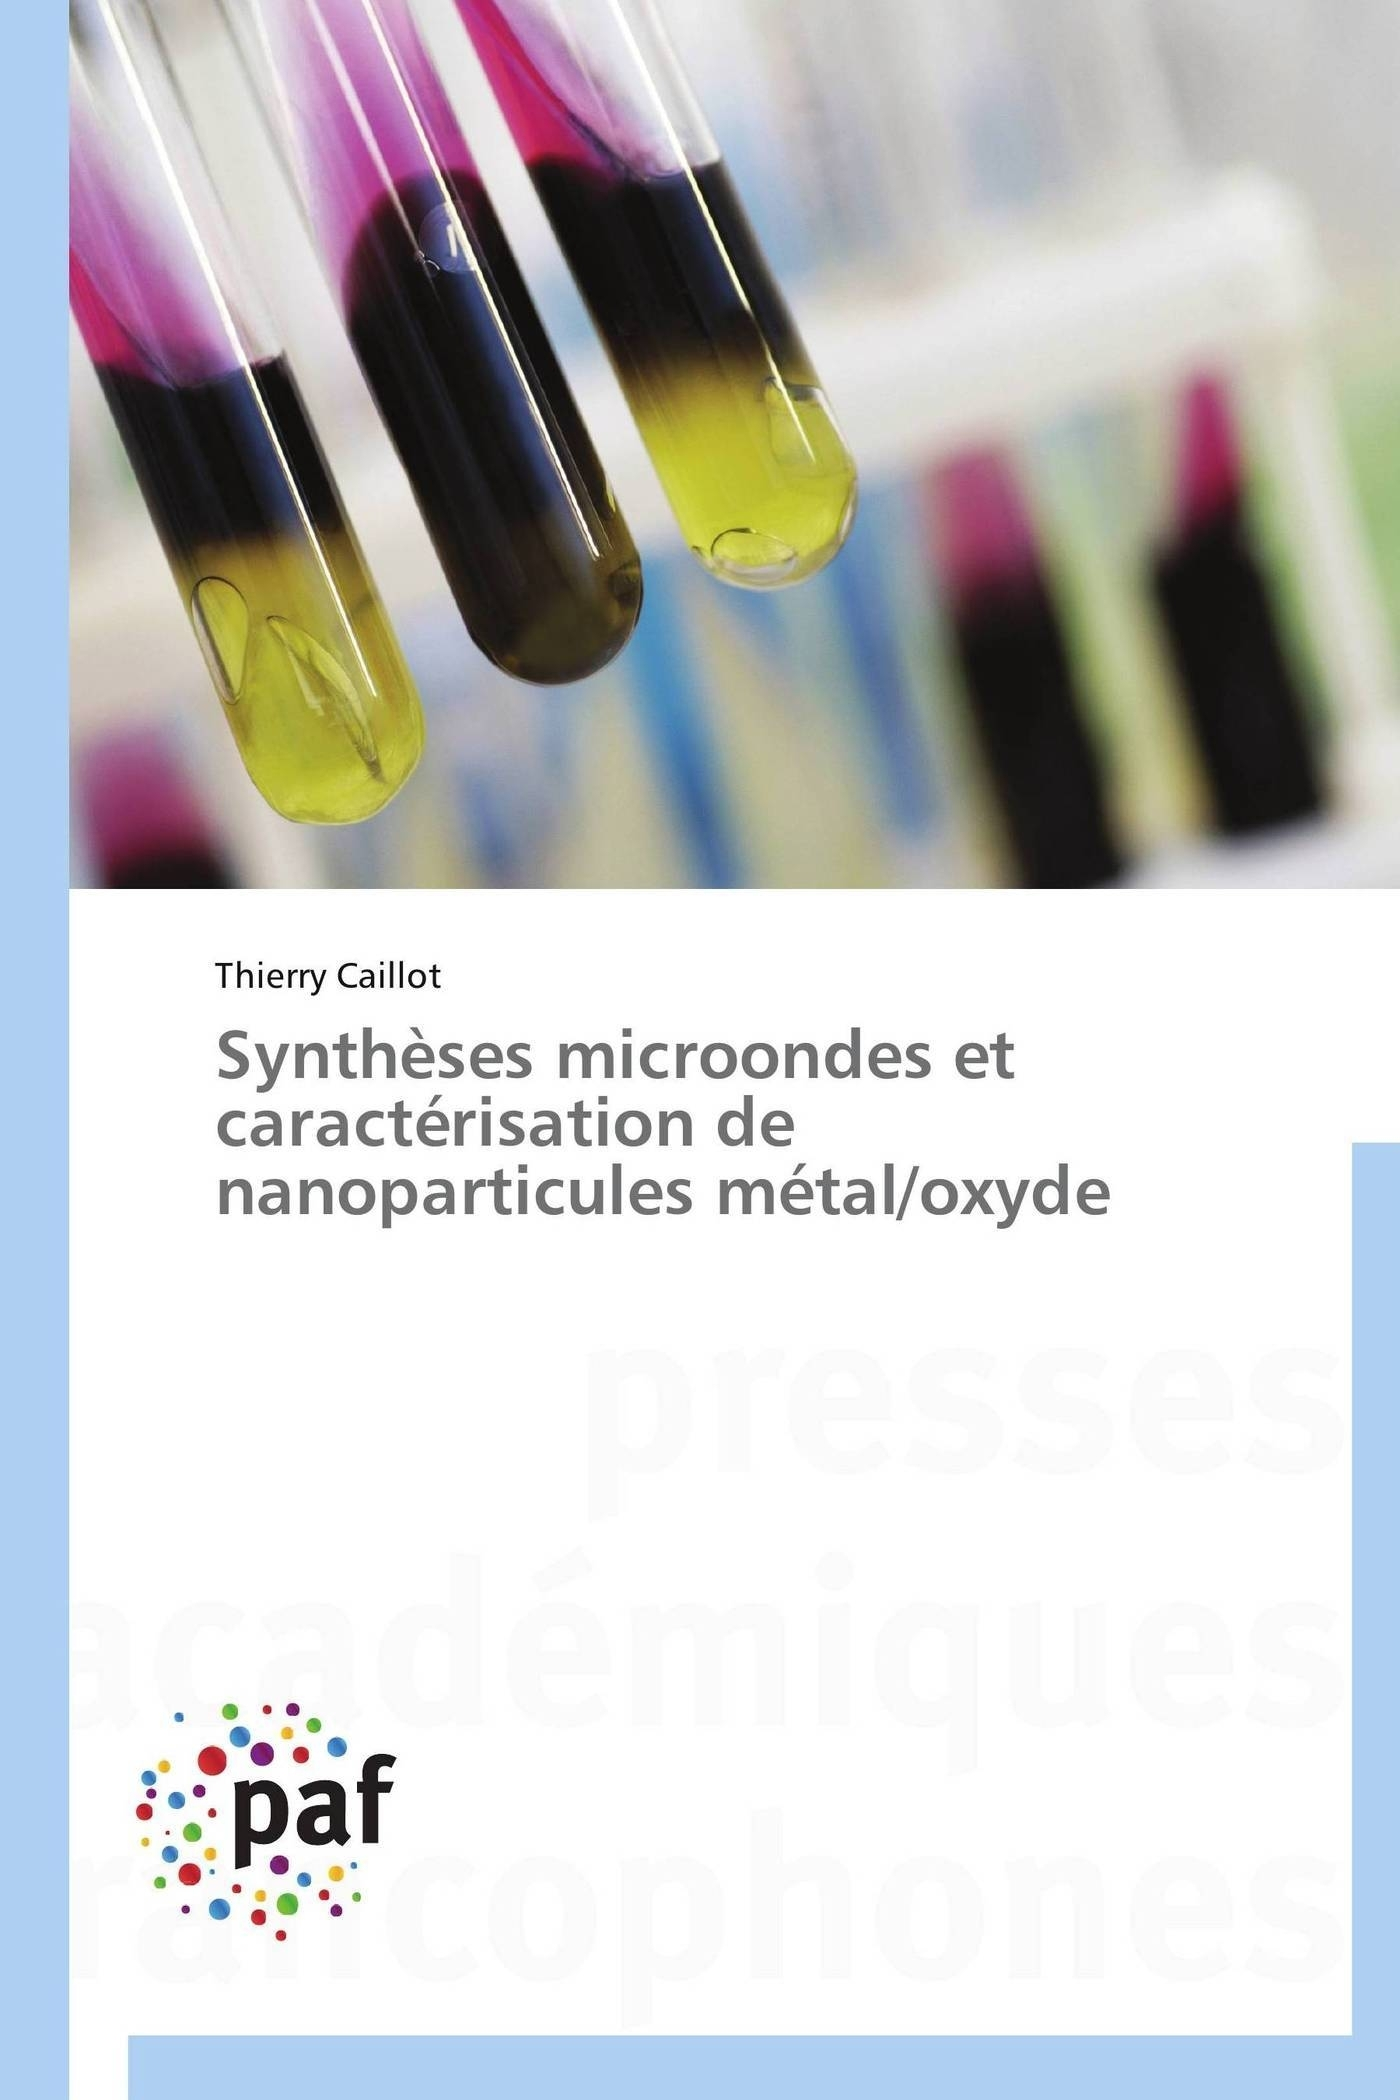 SYNTHESES MICROONDES ET CARACTERISATION DE NANOPARTICULES METAL/OXYDE